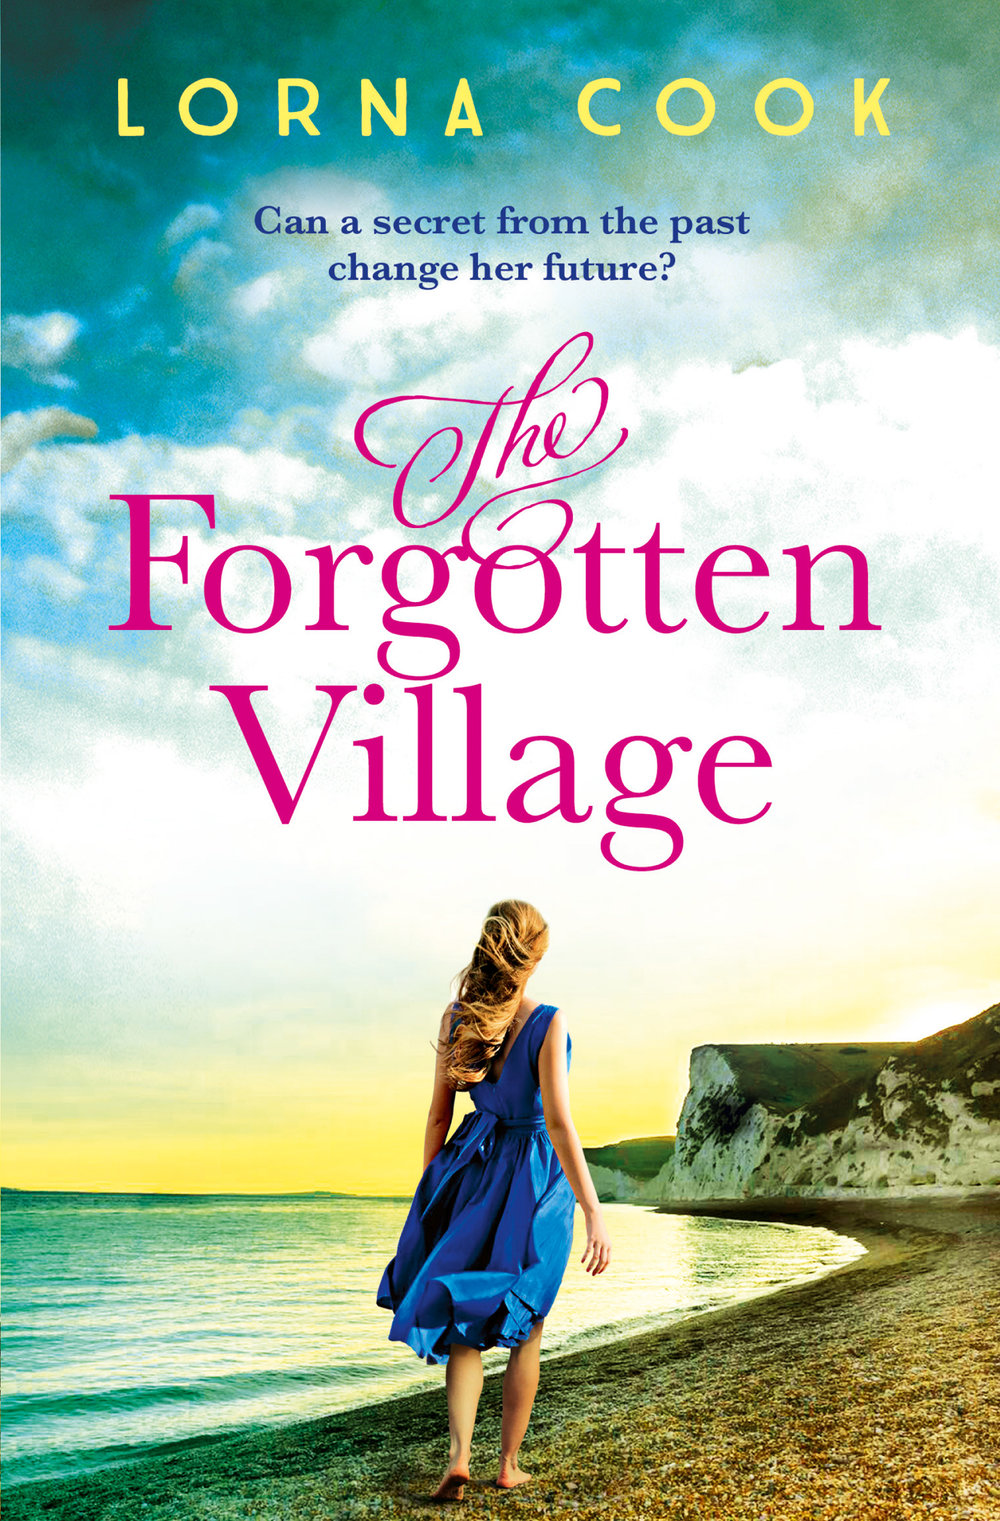 The Forgotten Village - A timeless story of love and sacrifice, perfect for fans of Rachel Hore, Tracy Rees and Kate Morton.'I was so absorbed that I read it in a single day' KATE RIORDAN, author of The Girl in the Photograph'A gripping tale of secrets and love… I loved it' LIZ FENWICK, author of The Cornish House1943: The world is at war, and the villagers of Tyneham are being asked to make one more sacrifice: to give their homes over to the British army. But on the eve of their departure, a terrible act will cause three of them to disappear forever.2018: Melissa had hoped a break on the coast of Dorset would rekindle her stagnant relationship,but despite the idyllic scenery, it's pushing her and Liam to the brink. When Melissa discovers a strange photograph of a woman who once lived in the forgotten local village of Tyneham, she becomes determined to find out more about her story. But Tyneham hides a terrible secret, and Melissa's search for the truth will change her life in ways she never imagined possible.CLICK HERE TO BUY THE FORGOTTEN VILLAGE IN EITHER EBOOK OR PAPERBACKThe Forgotten Village will be released in April 2019 in paperback with:Avon (HarperCollins) in the UKPenguin Verlag in GermanyA.W. Bruna in The NetherlandsAvon (HarperCollins) in Canada & USA, where it will be called The Forgotten Wife.